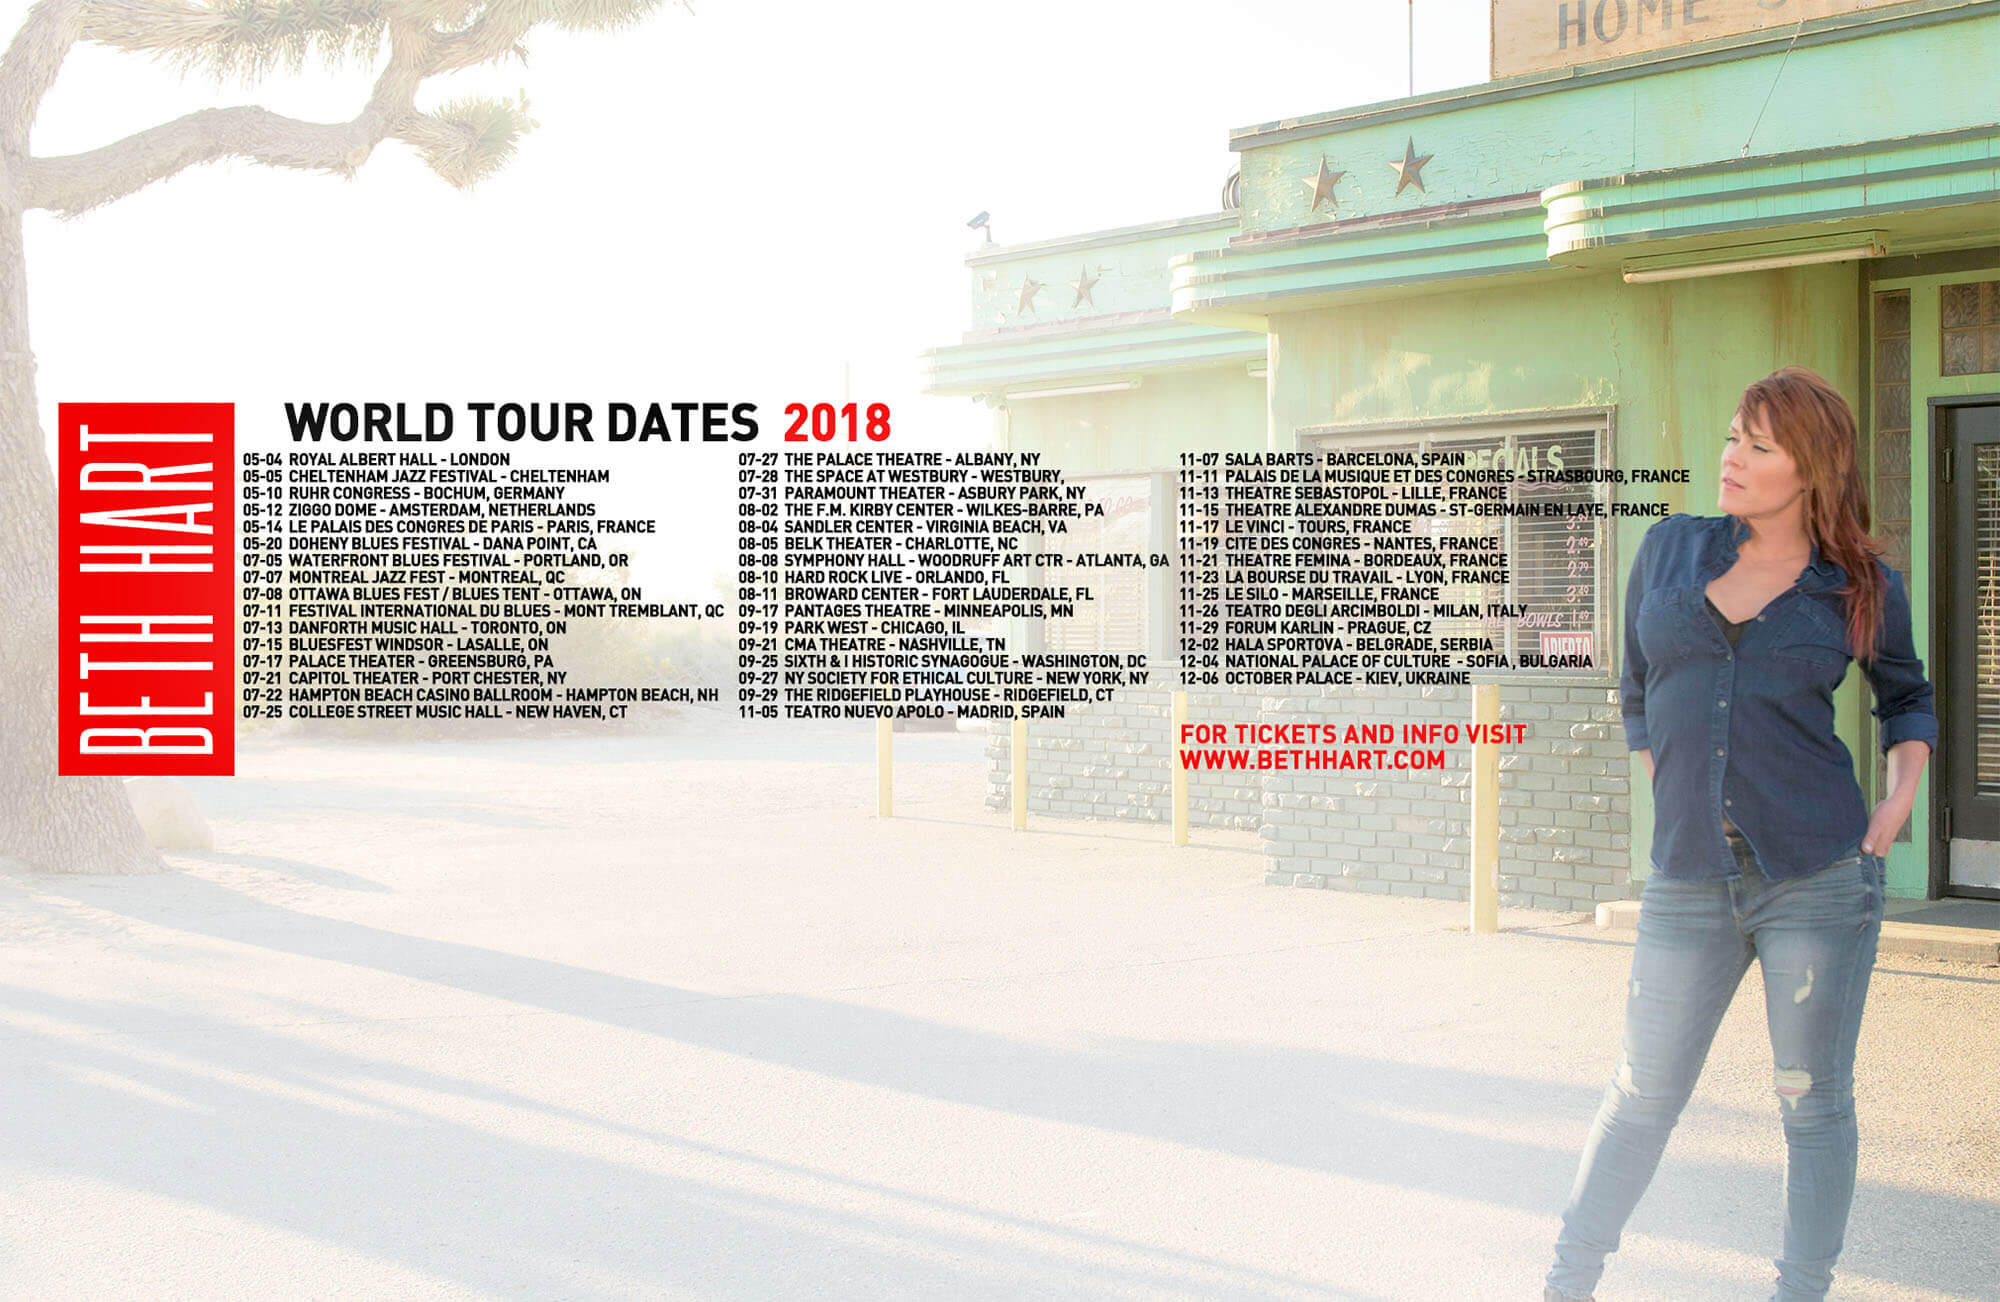 World Tour Dates